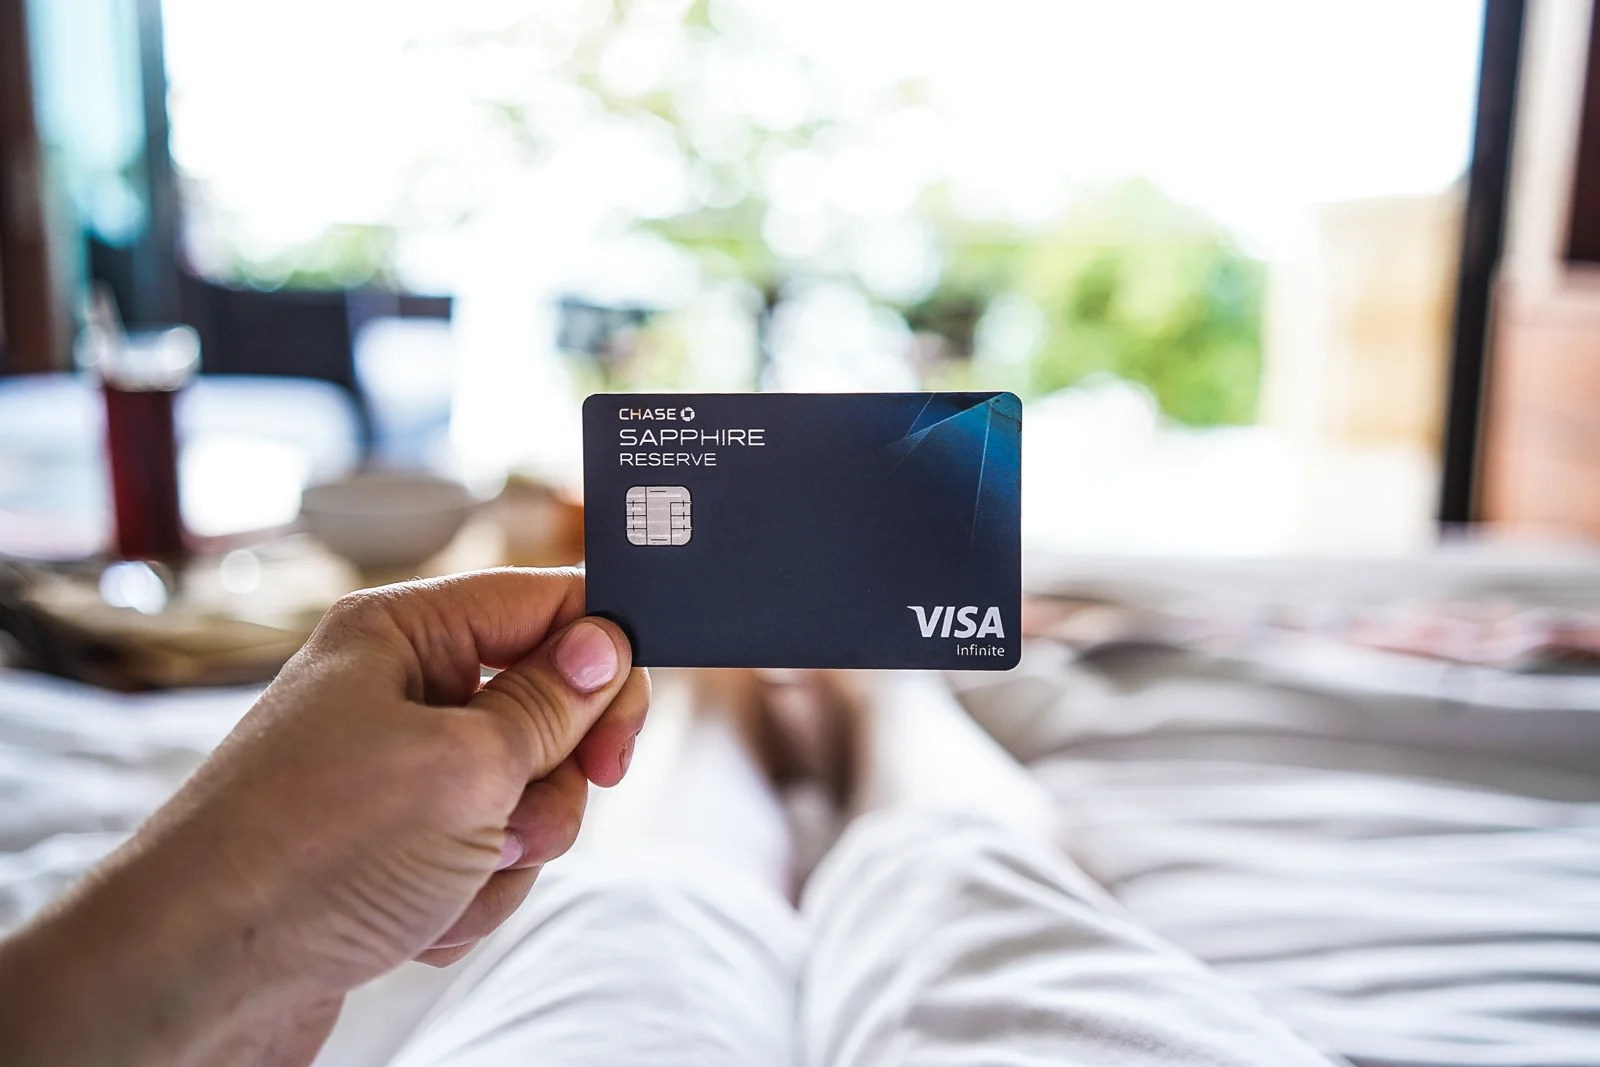 Best United Airlines Credit Cards of 2019 - The Points Guy